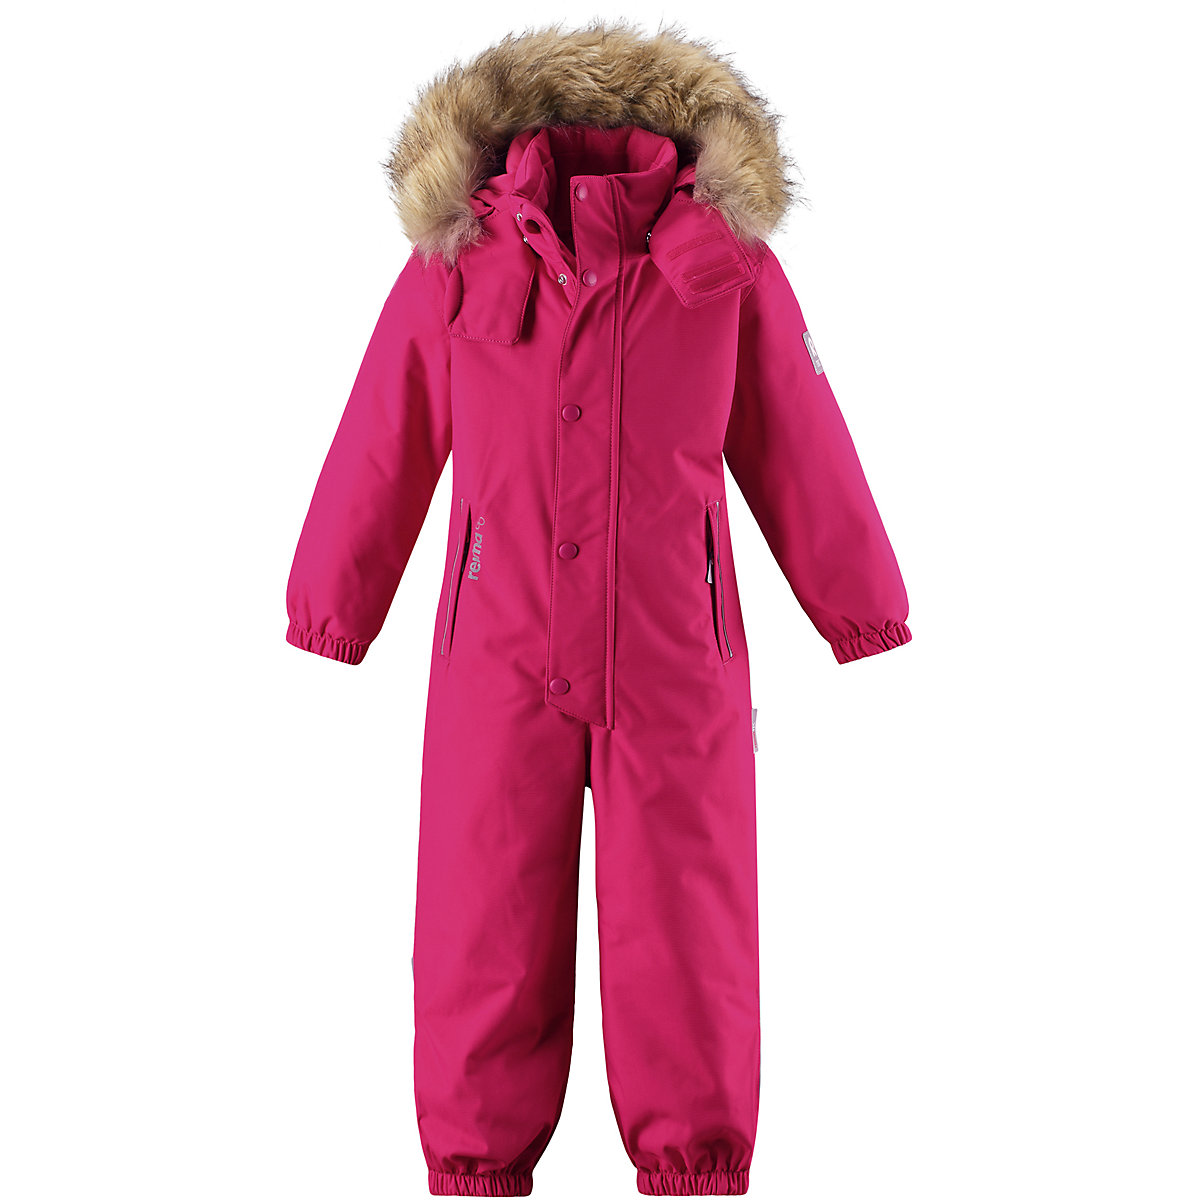 REIMA Overalls  8689312 for girls polyester winter sweaters reima 8689240 for girls polyester winter